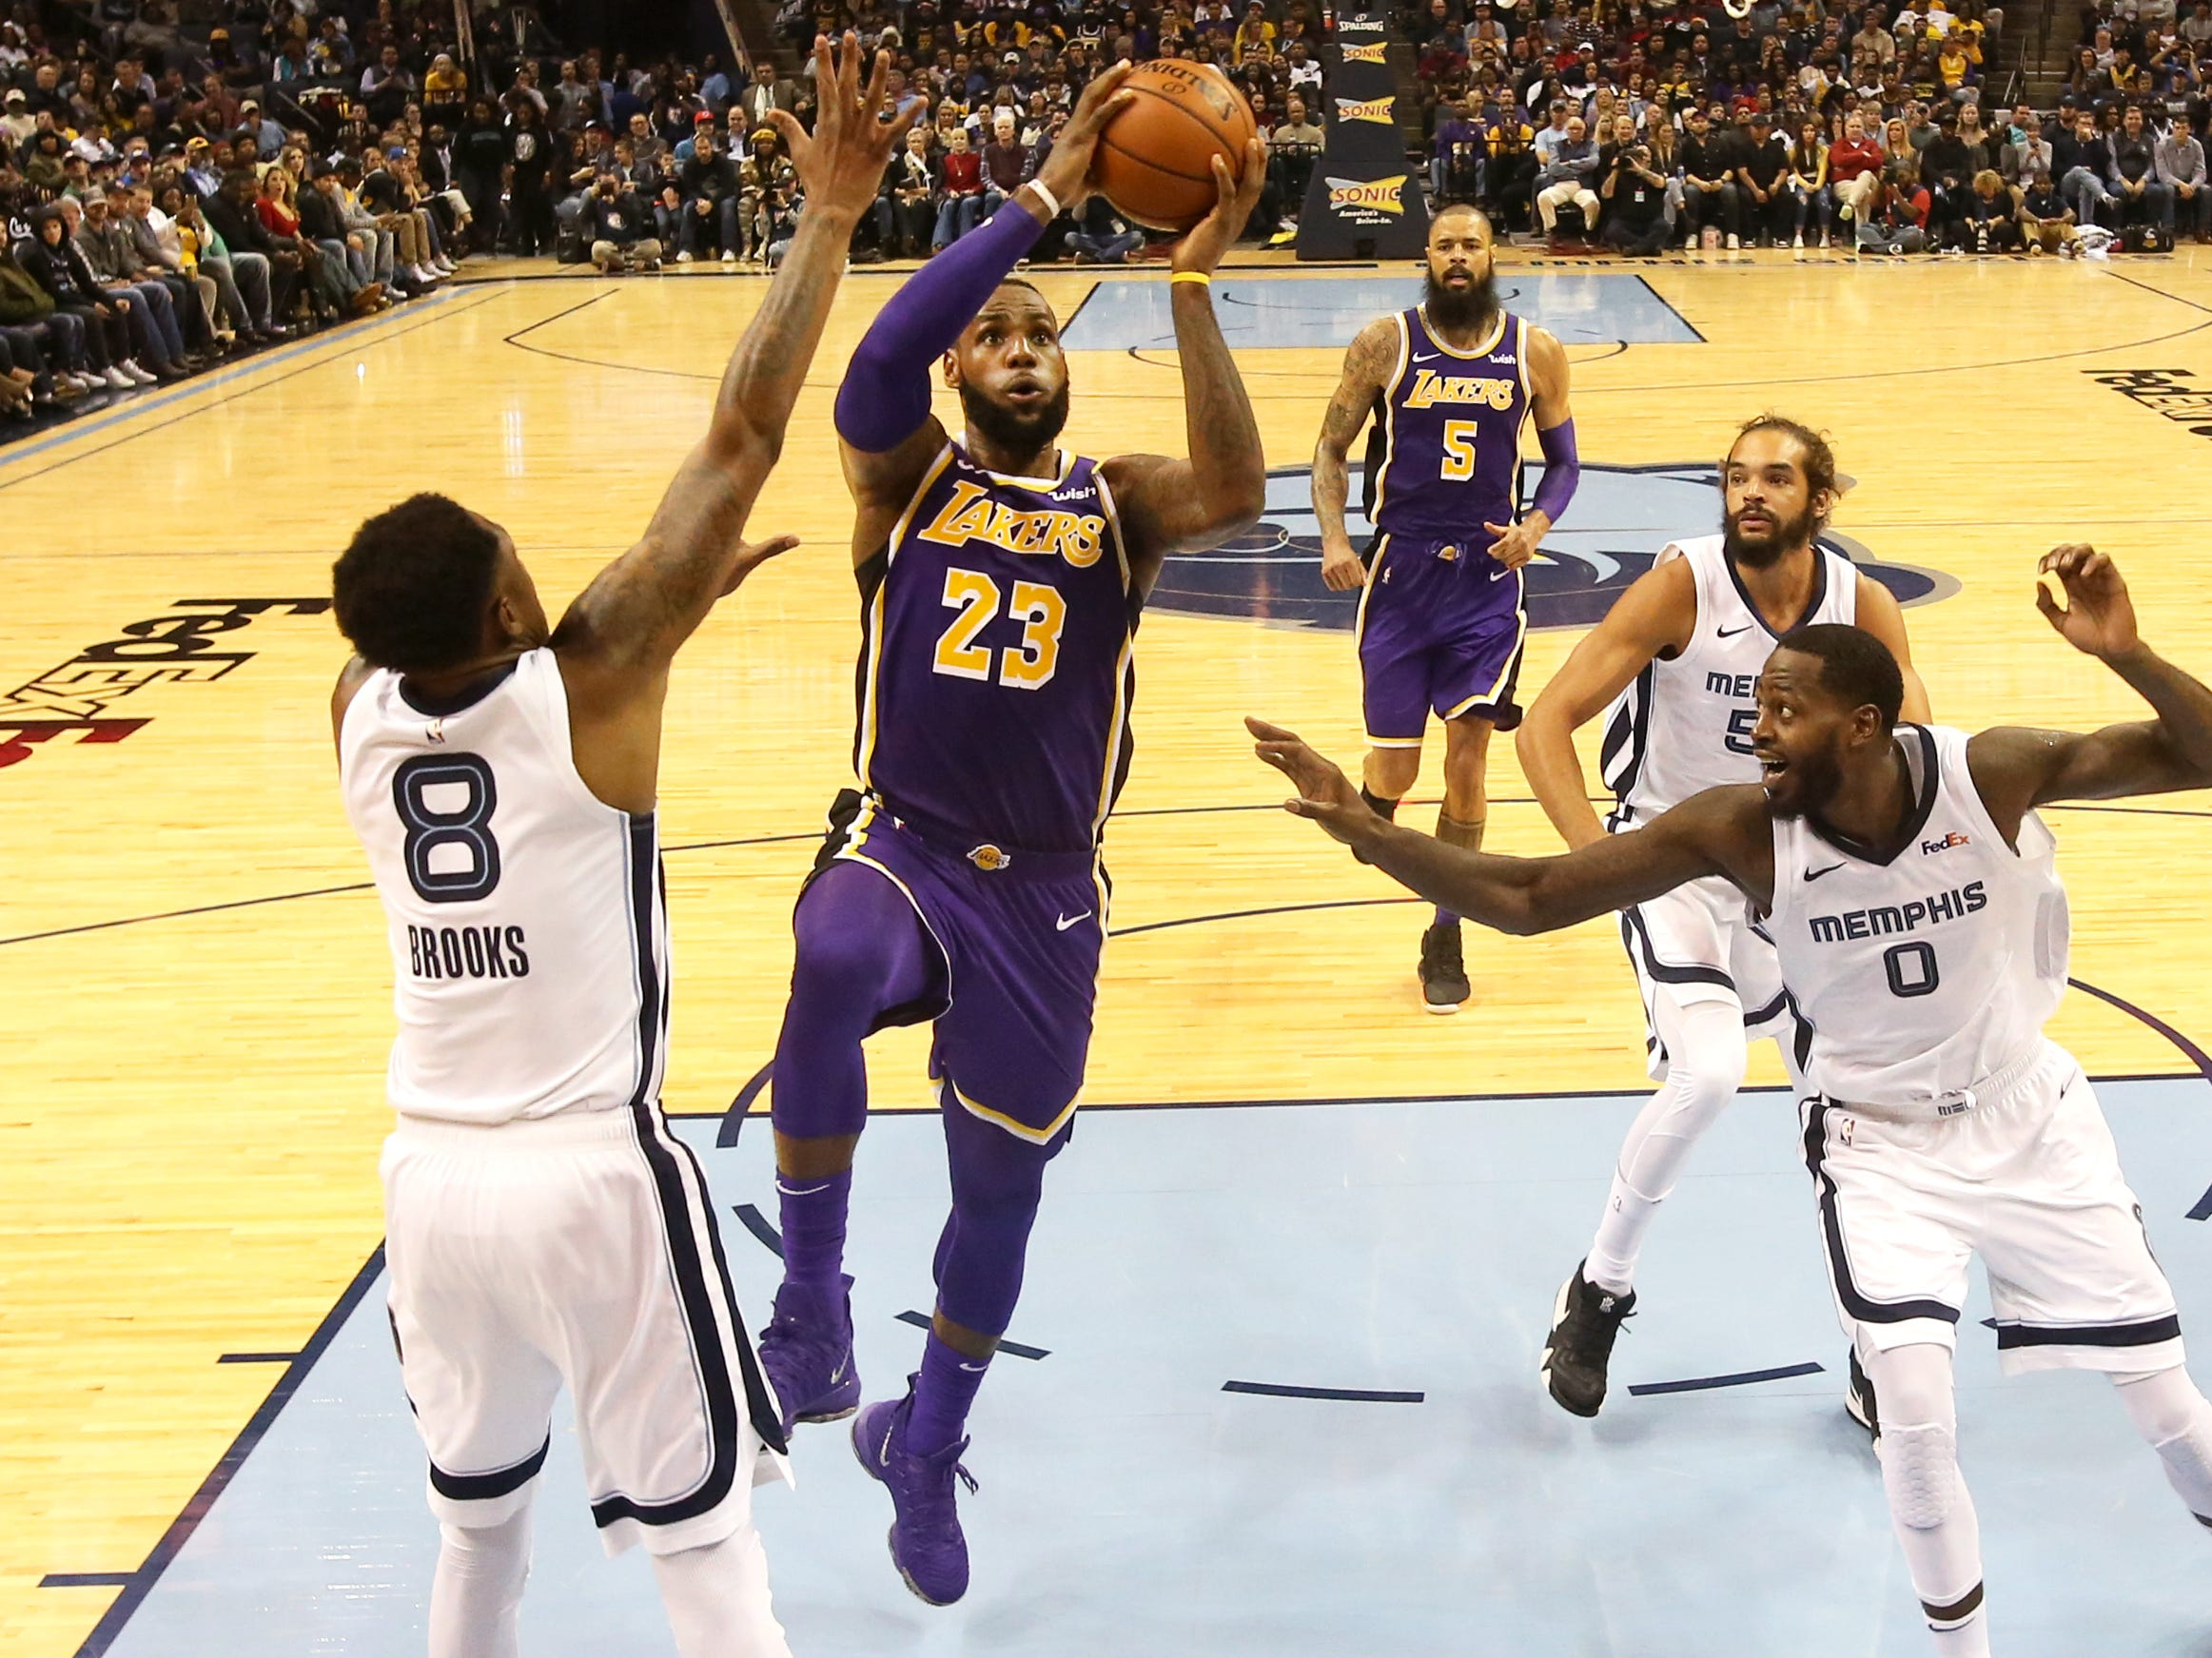 Los Angeles Lakers forward LaBron James lays the ball up past Memphis Grizzlies guard MarShon Brooks duirng their game at the FedExForum on Saturday, Dec. 8, 2018.